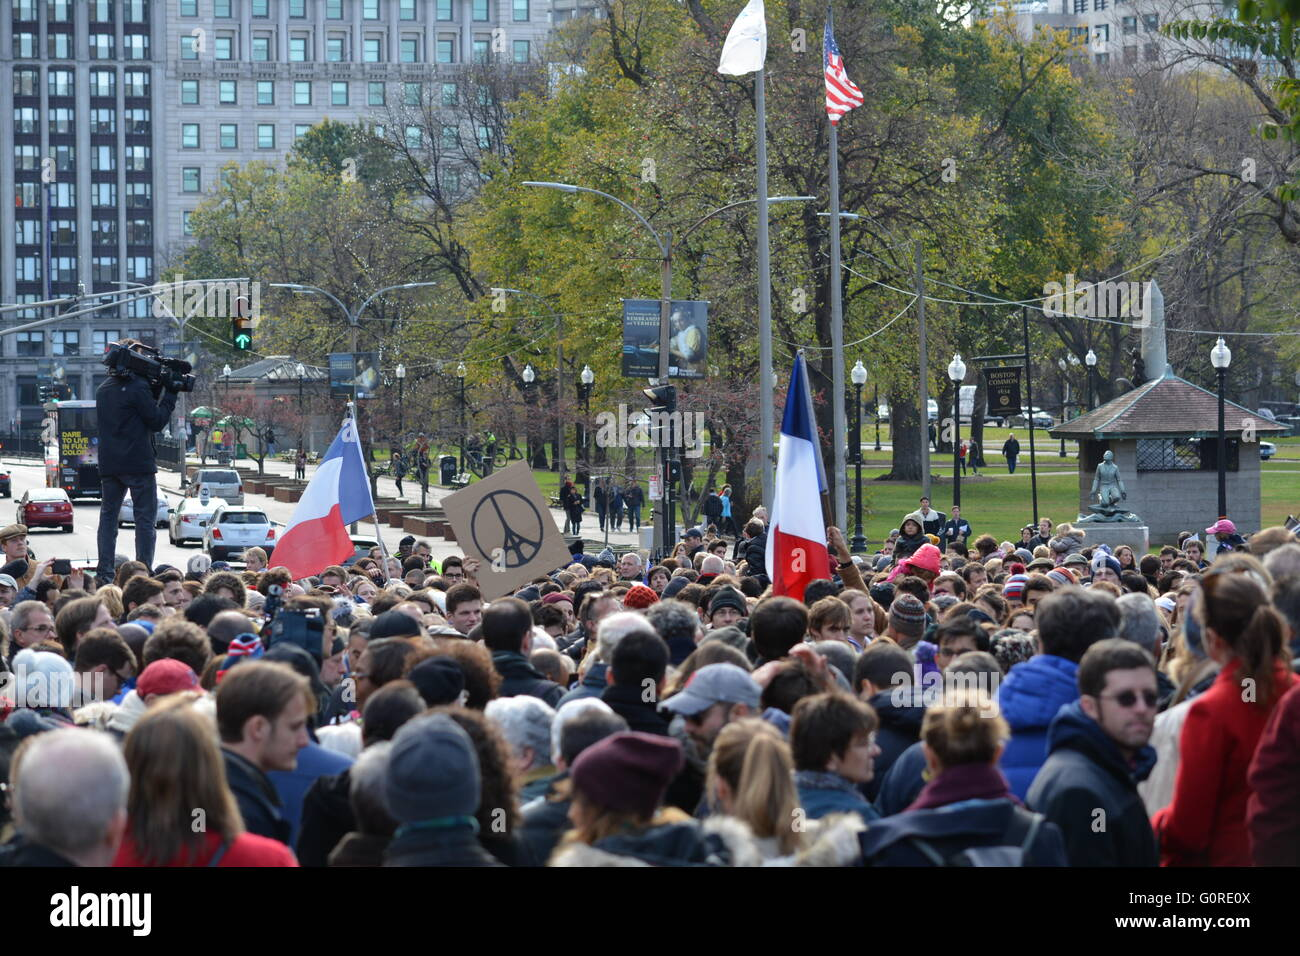 A gathering of people in the Boston Common memorializing the horrible events that transpired in Paris in November - Stock Image